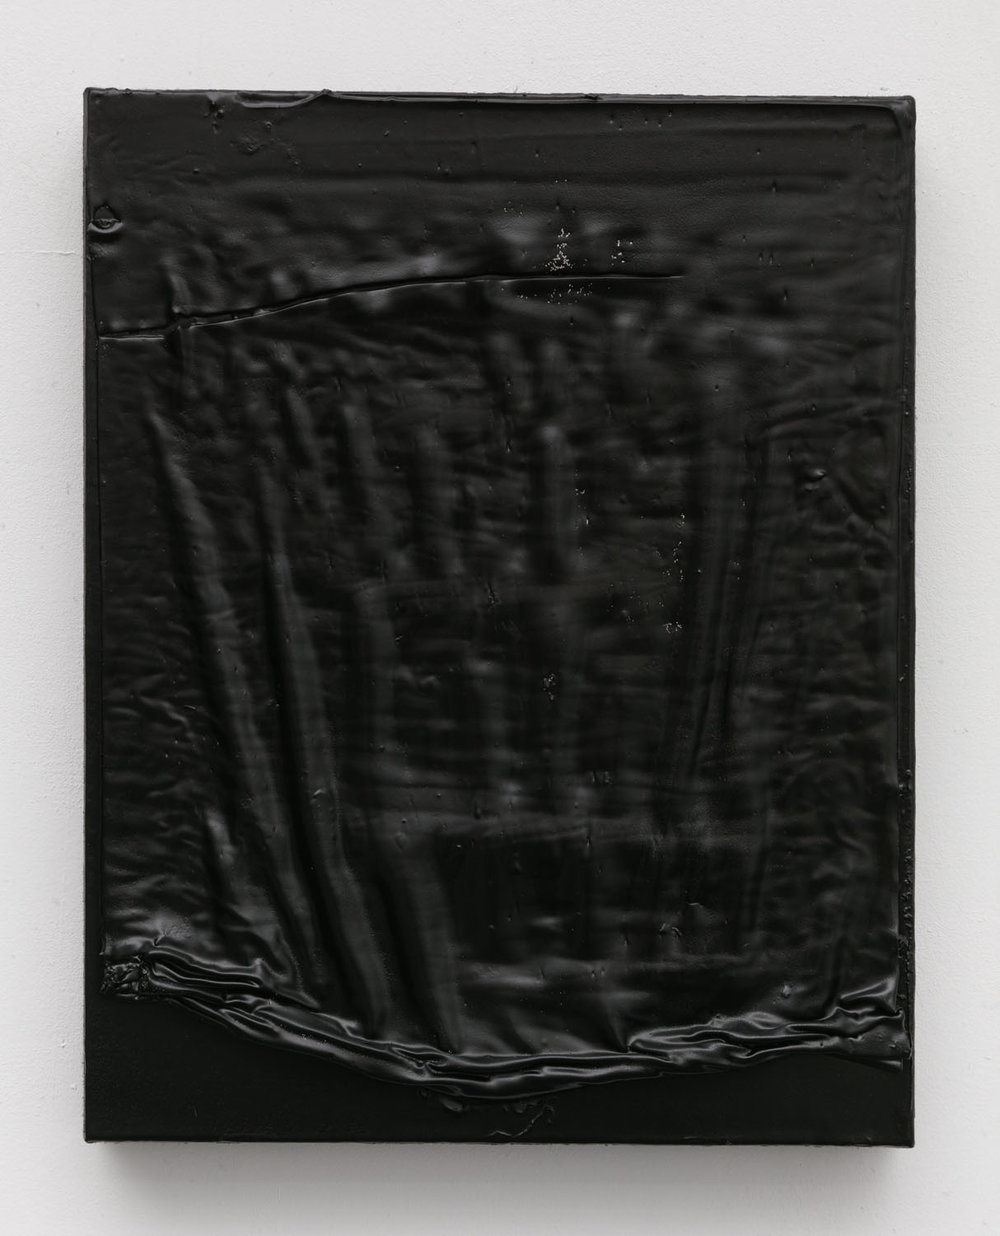 Thomas Fougeirol  Untitled, 2016  Mixed media on canvas  14 x 11 inches